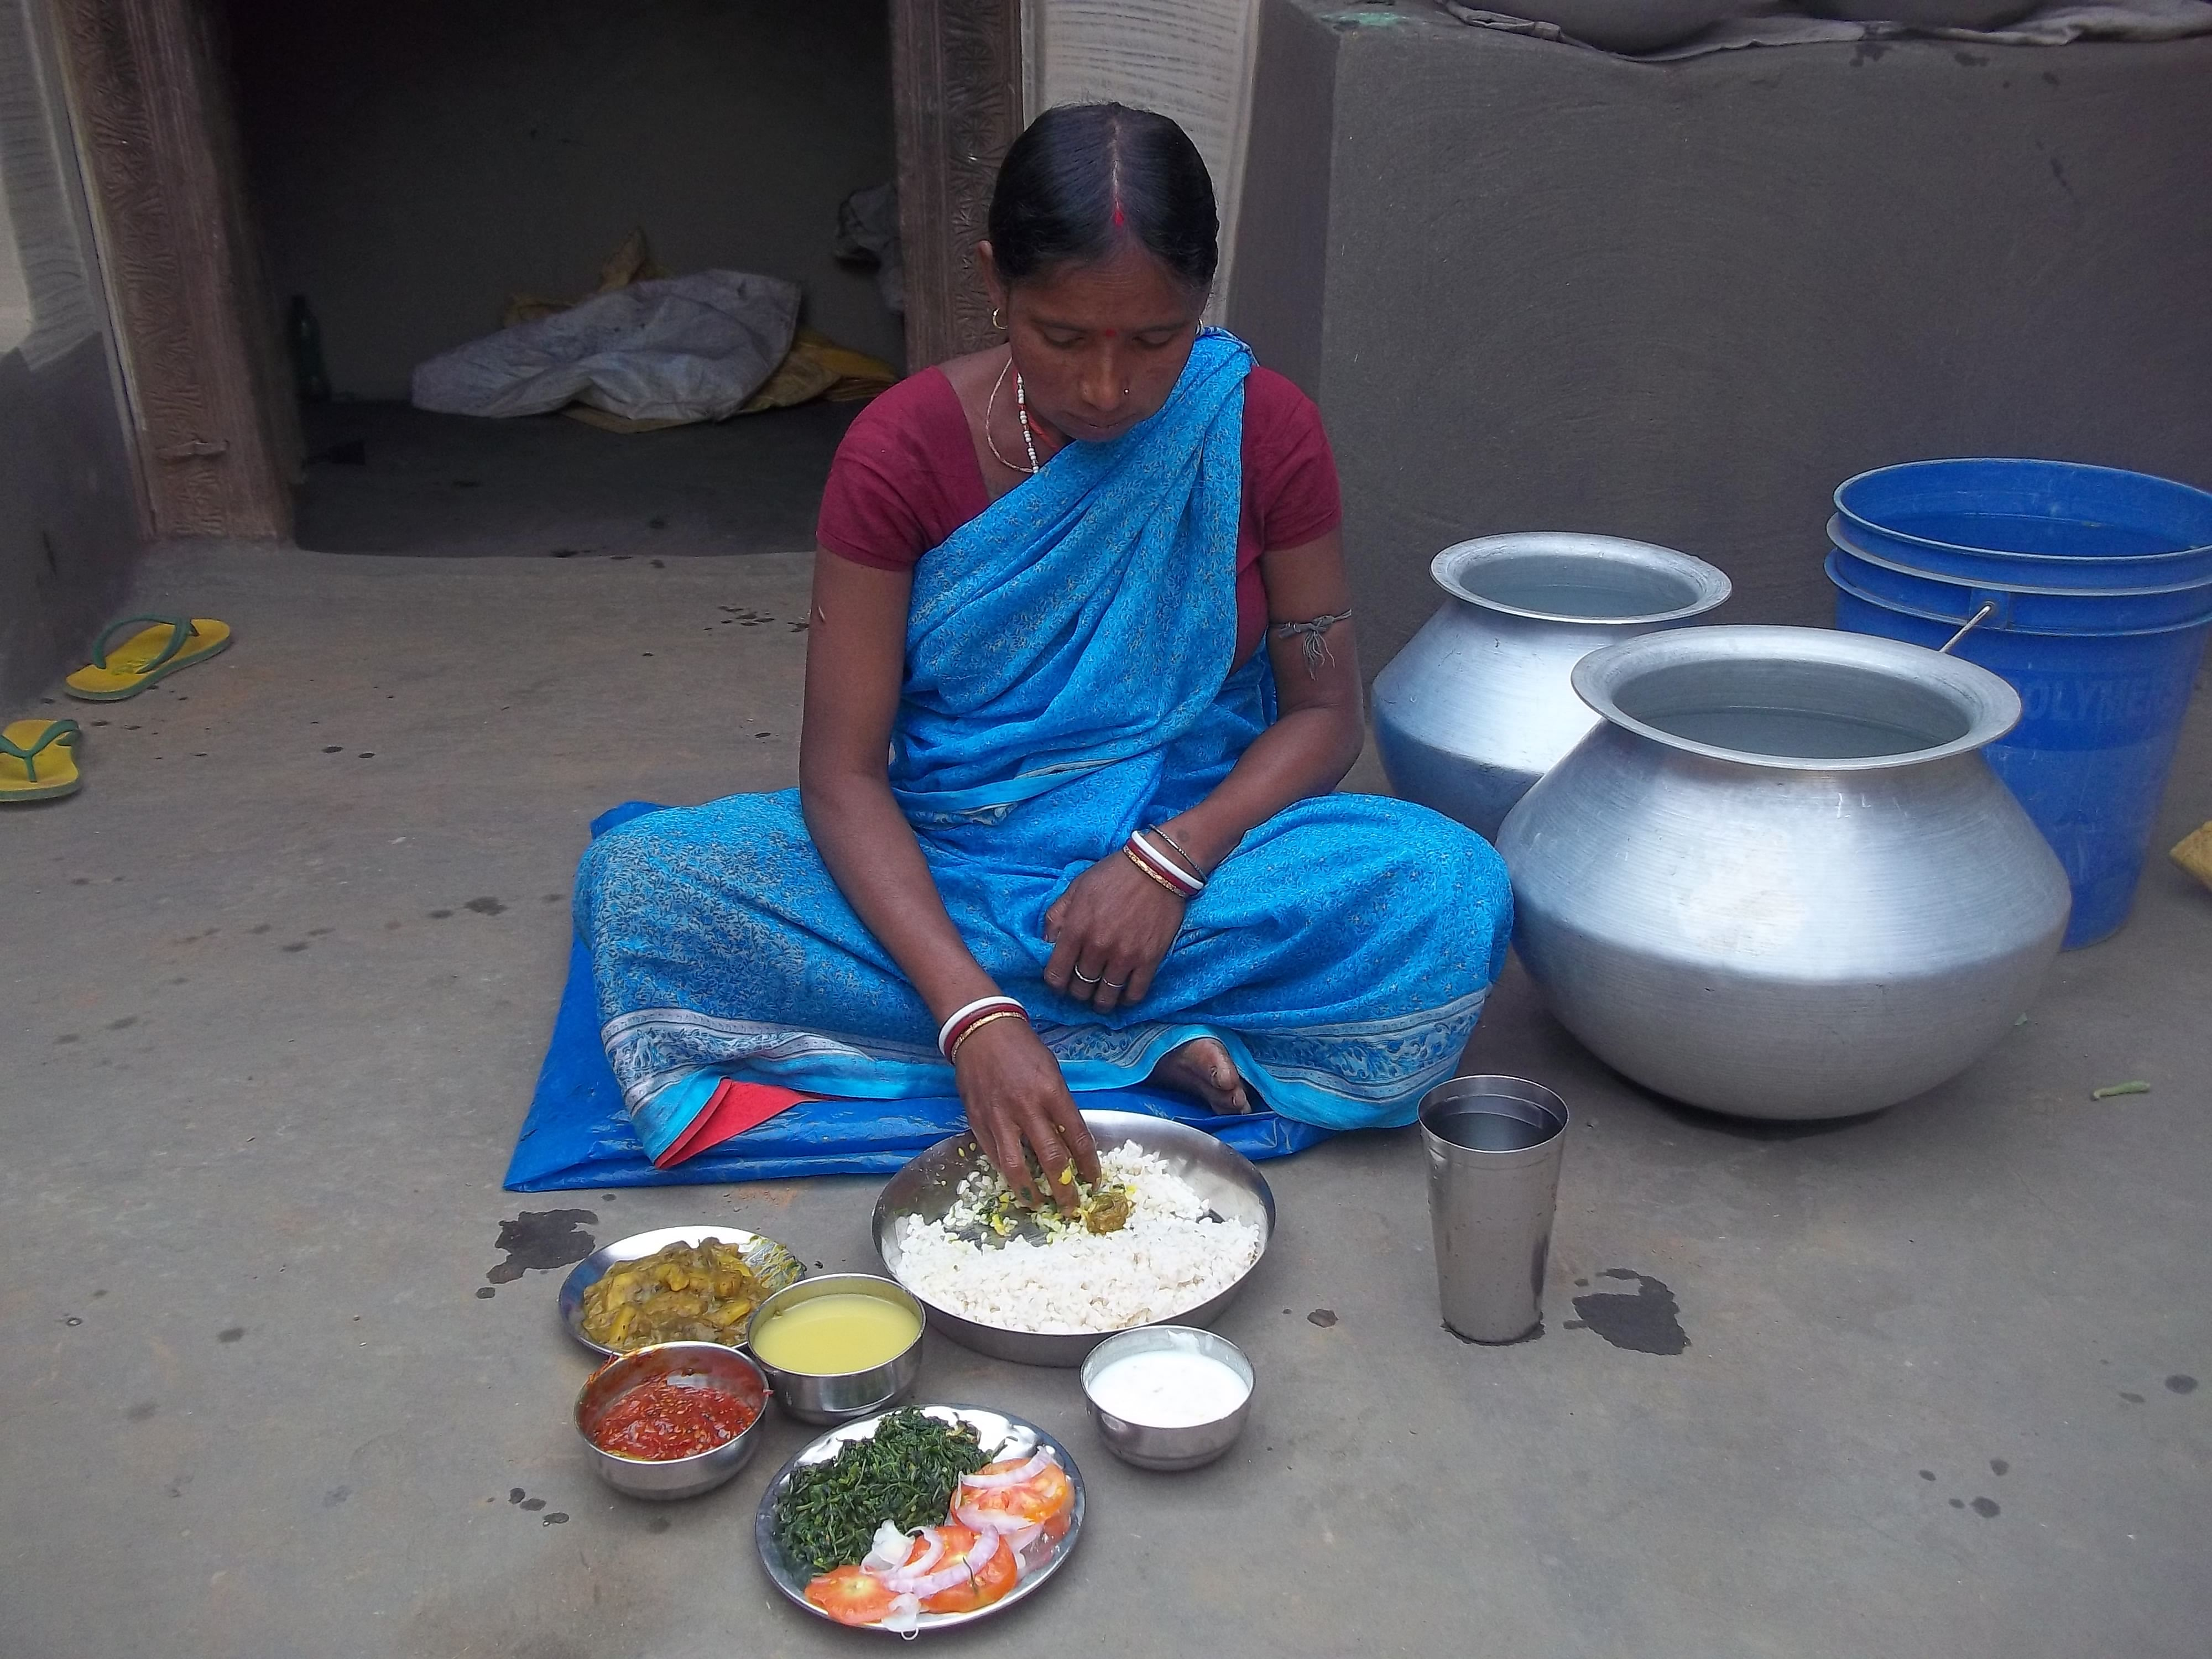 In Kasudih village, which is part of the Tatkiyo panchayat, Sheela Devi has taken to cooking 'tiranga bhojan' to ensure proper nutrition for the family. (Credit: Saadia Azim\WFS)